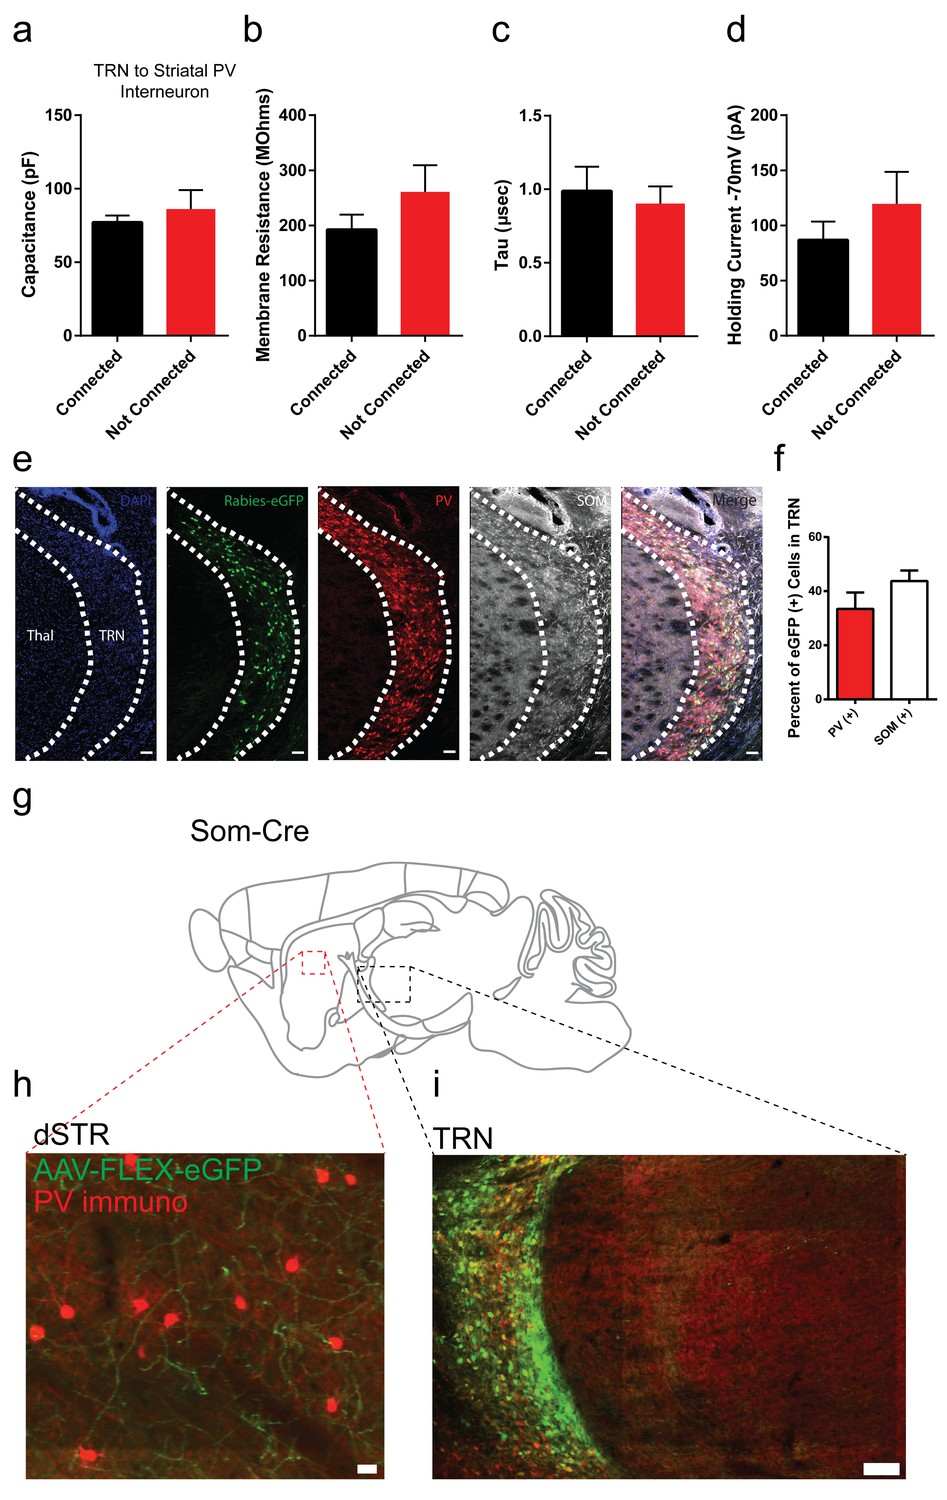 Differential Inputs To Striatal Cholinergic And Parvalbumin Cap Discharge Circuit O27 Switch Membrane Properties Of Pv Interneurons Are Similar Between Trn Connected Or Non Cells